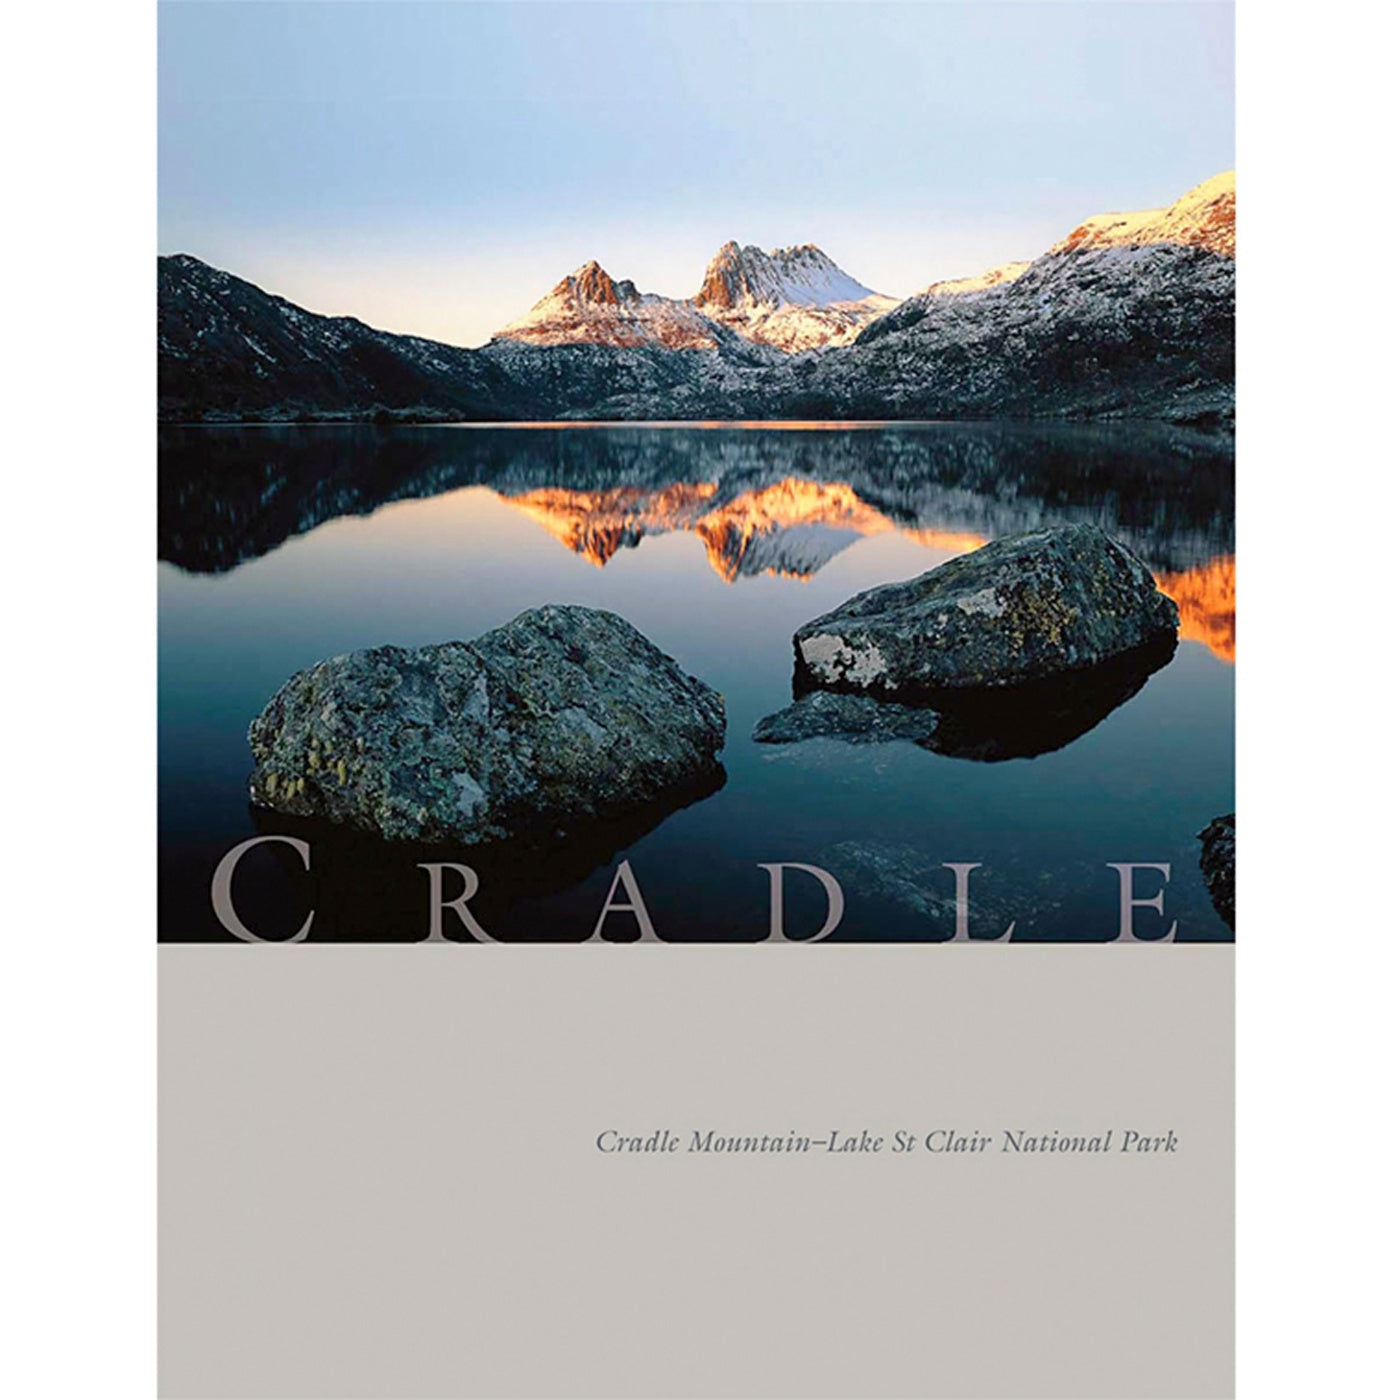 Cradle: Cradle Mountain-Lake St Clair National Park